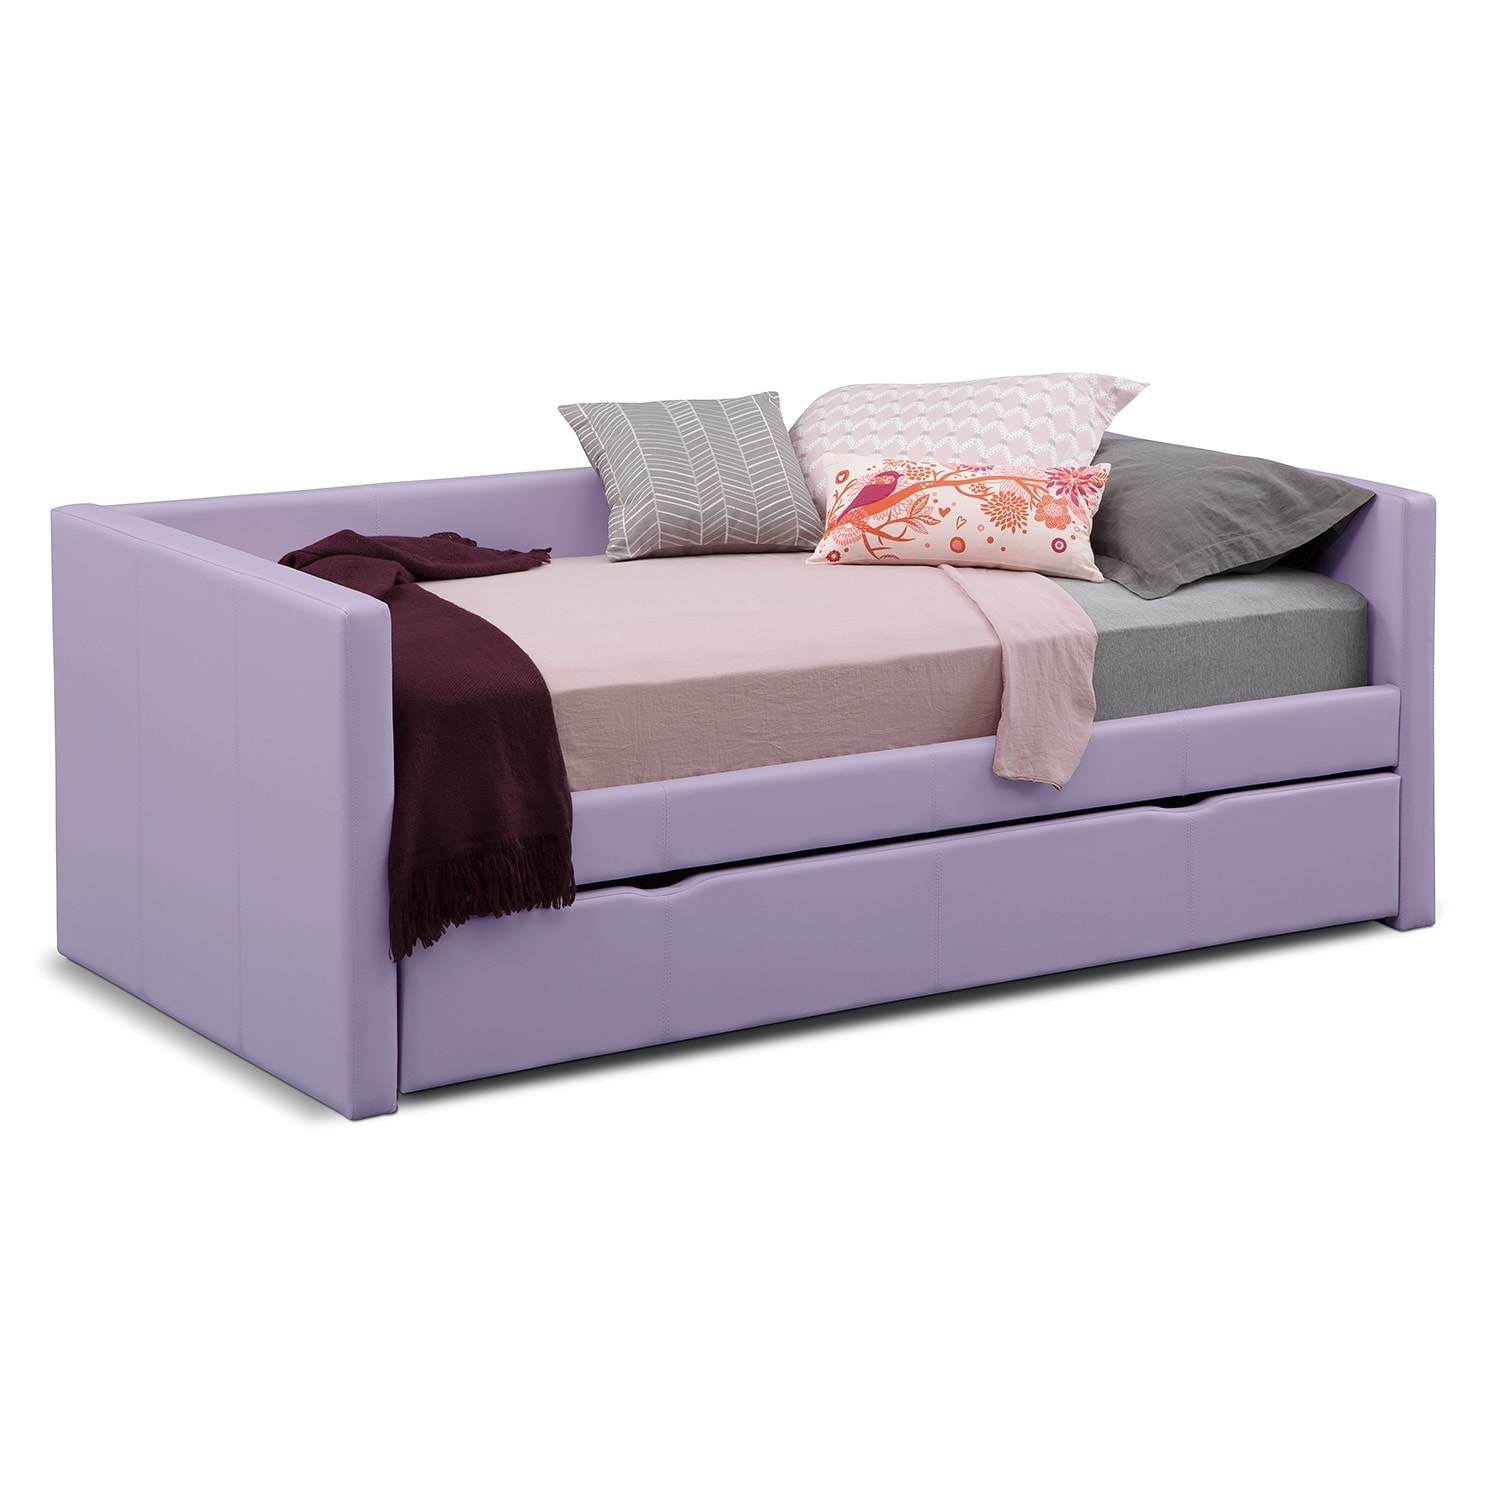 carey full daybed with trundle purple